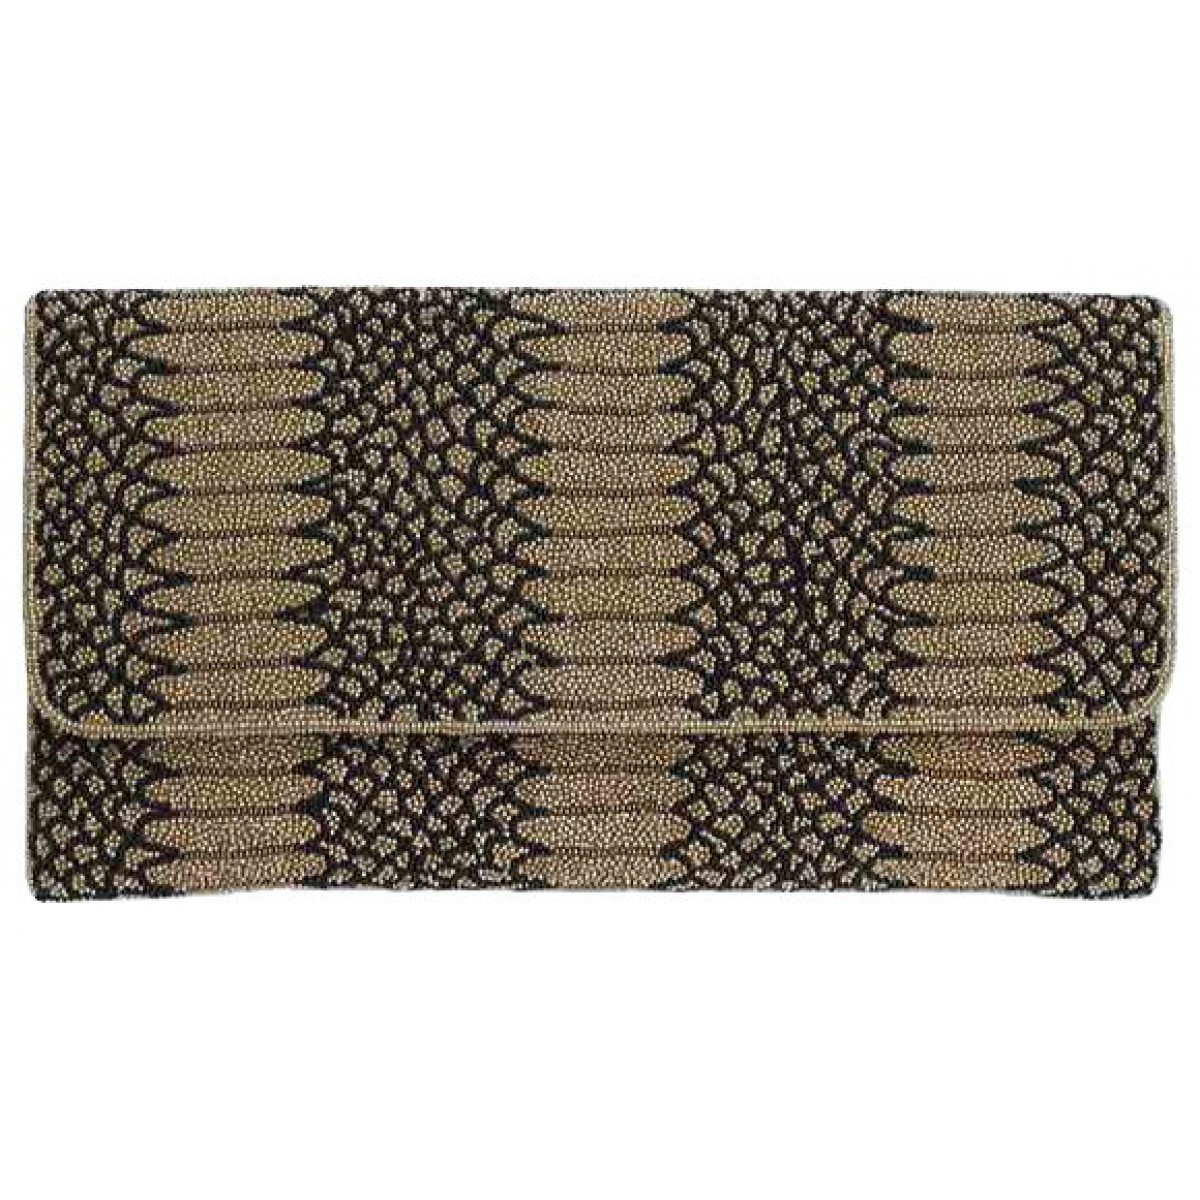 Large Beaded Reptile Clutch